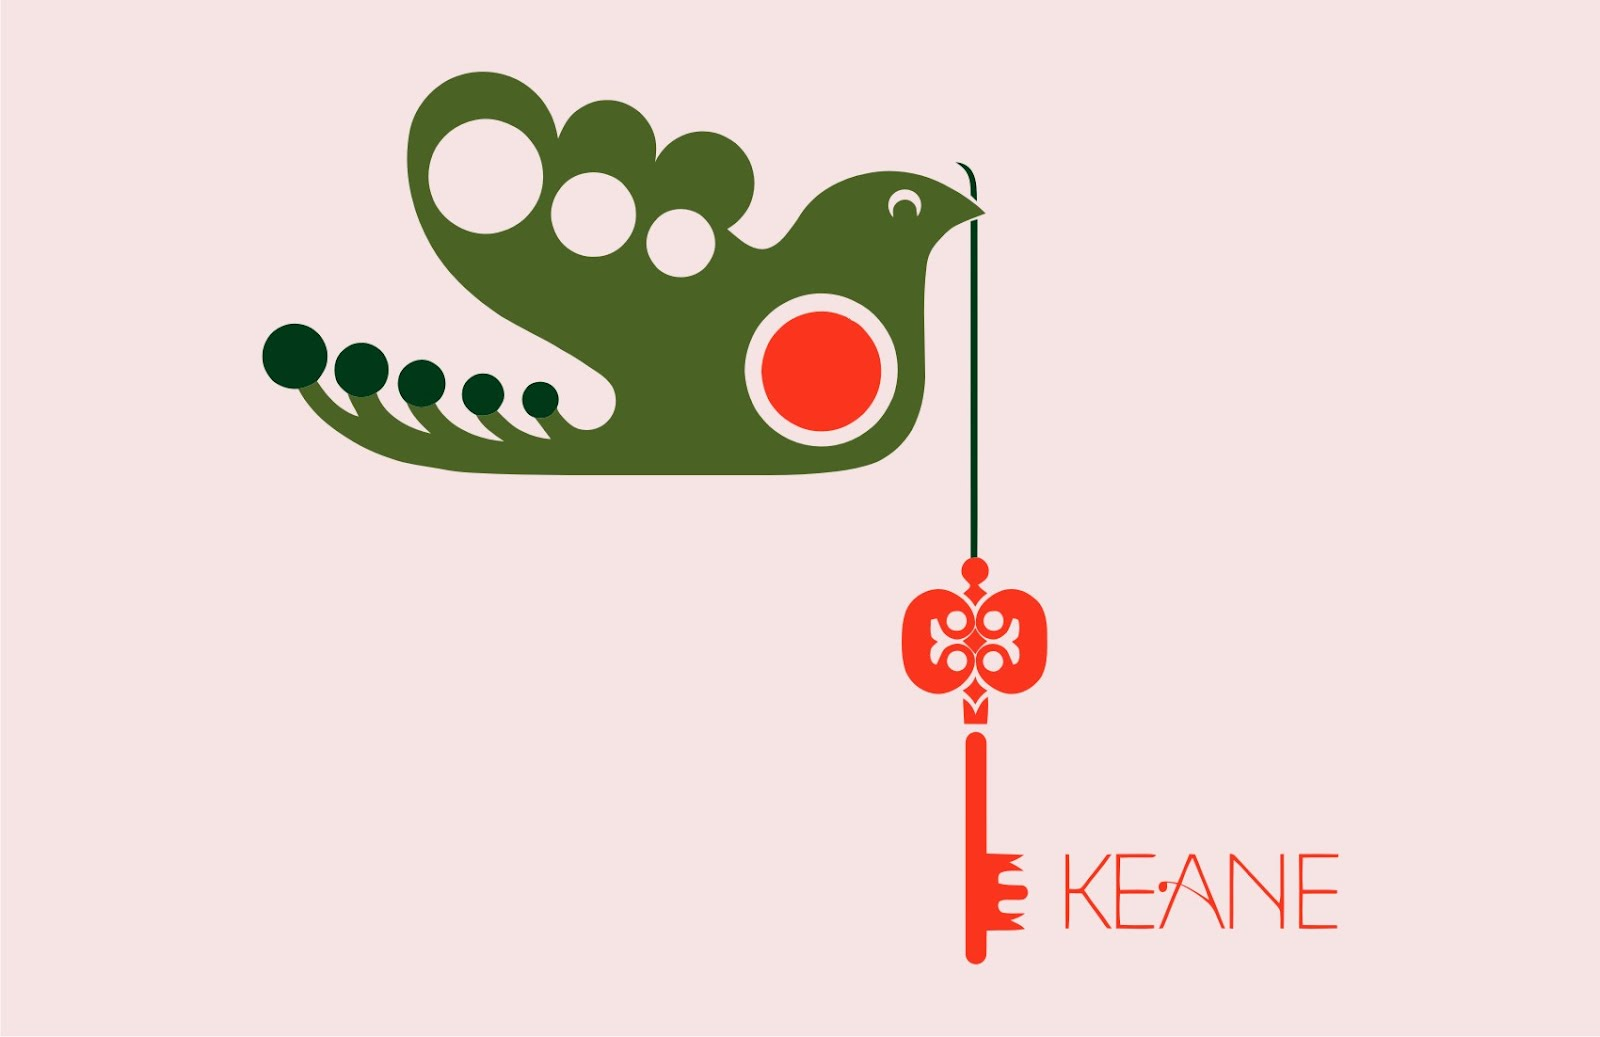 keane-birdkey_one_back_vector